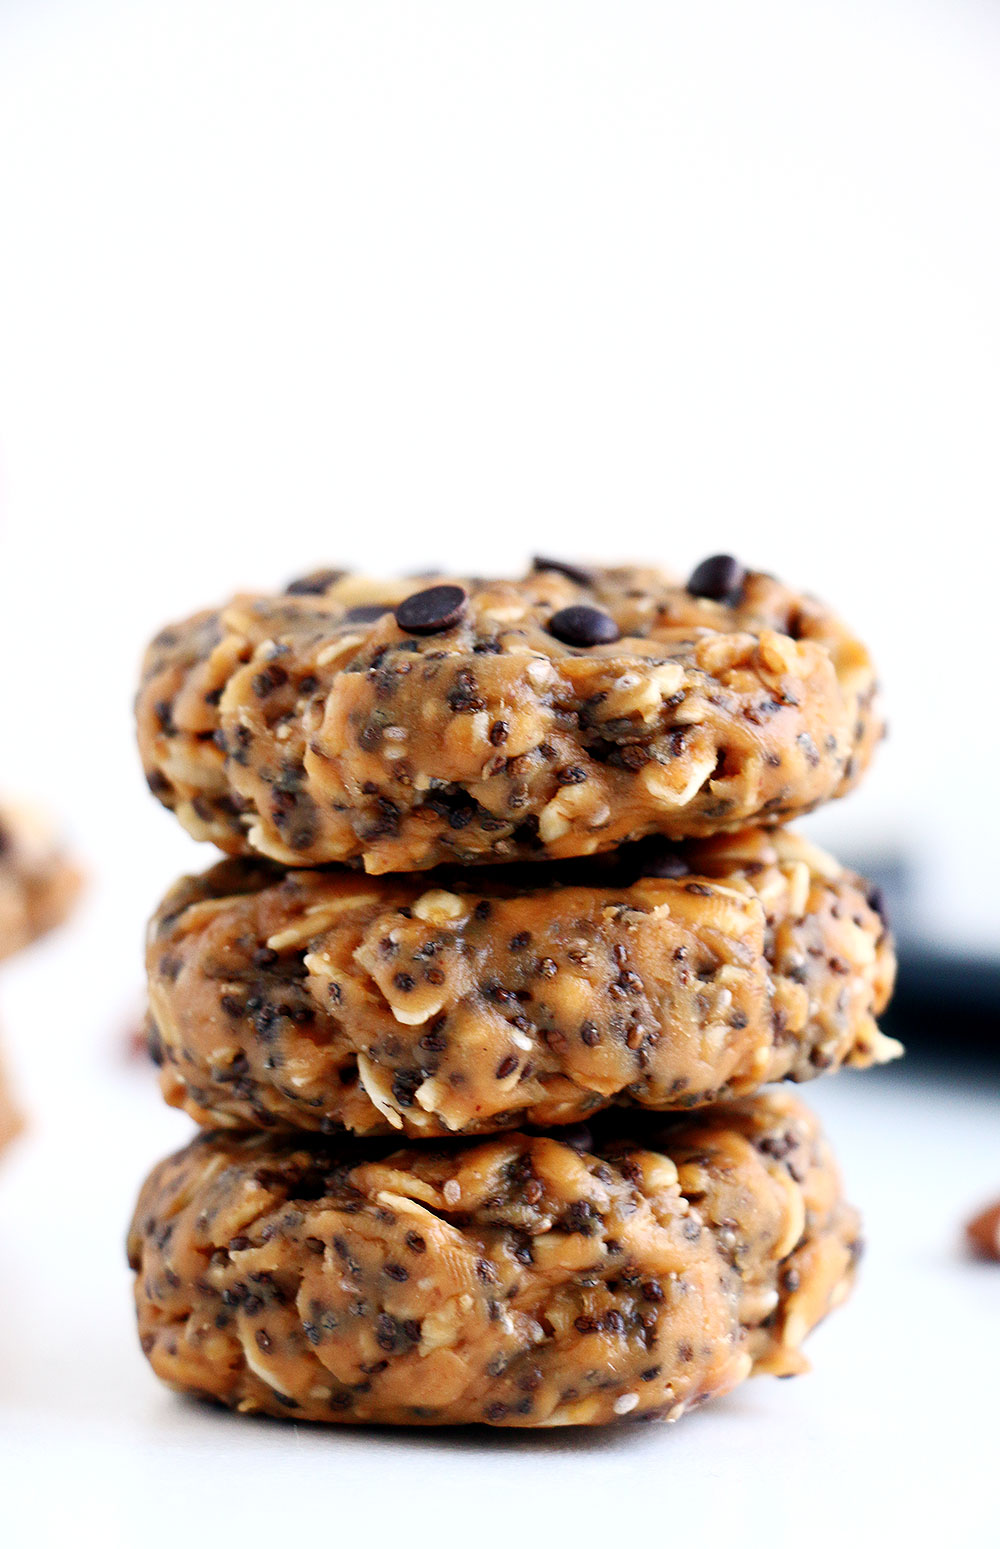 No bake breakfast cookies are great meal prep ideas for hot weather.